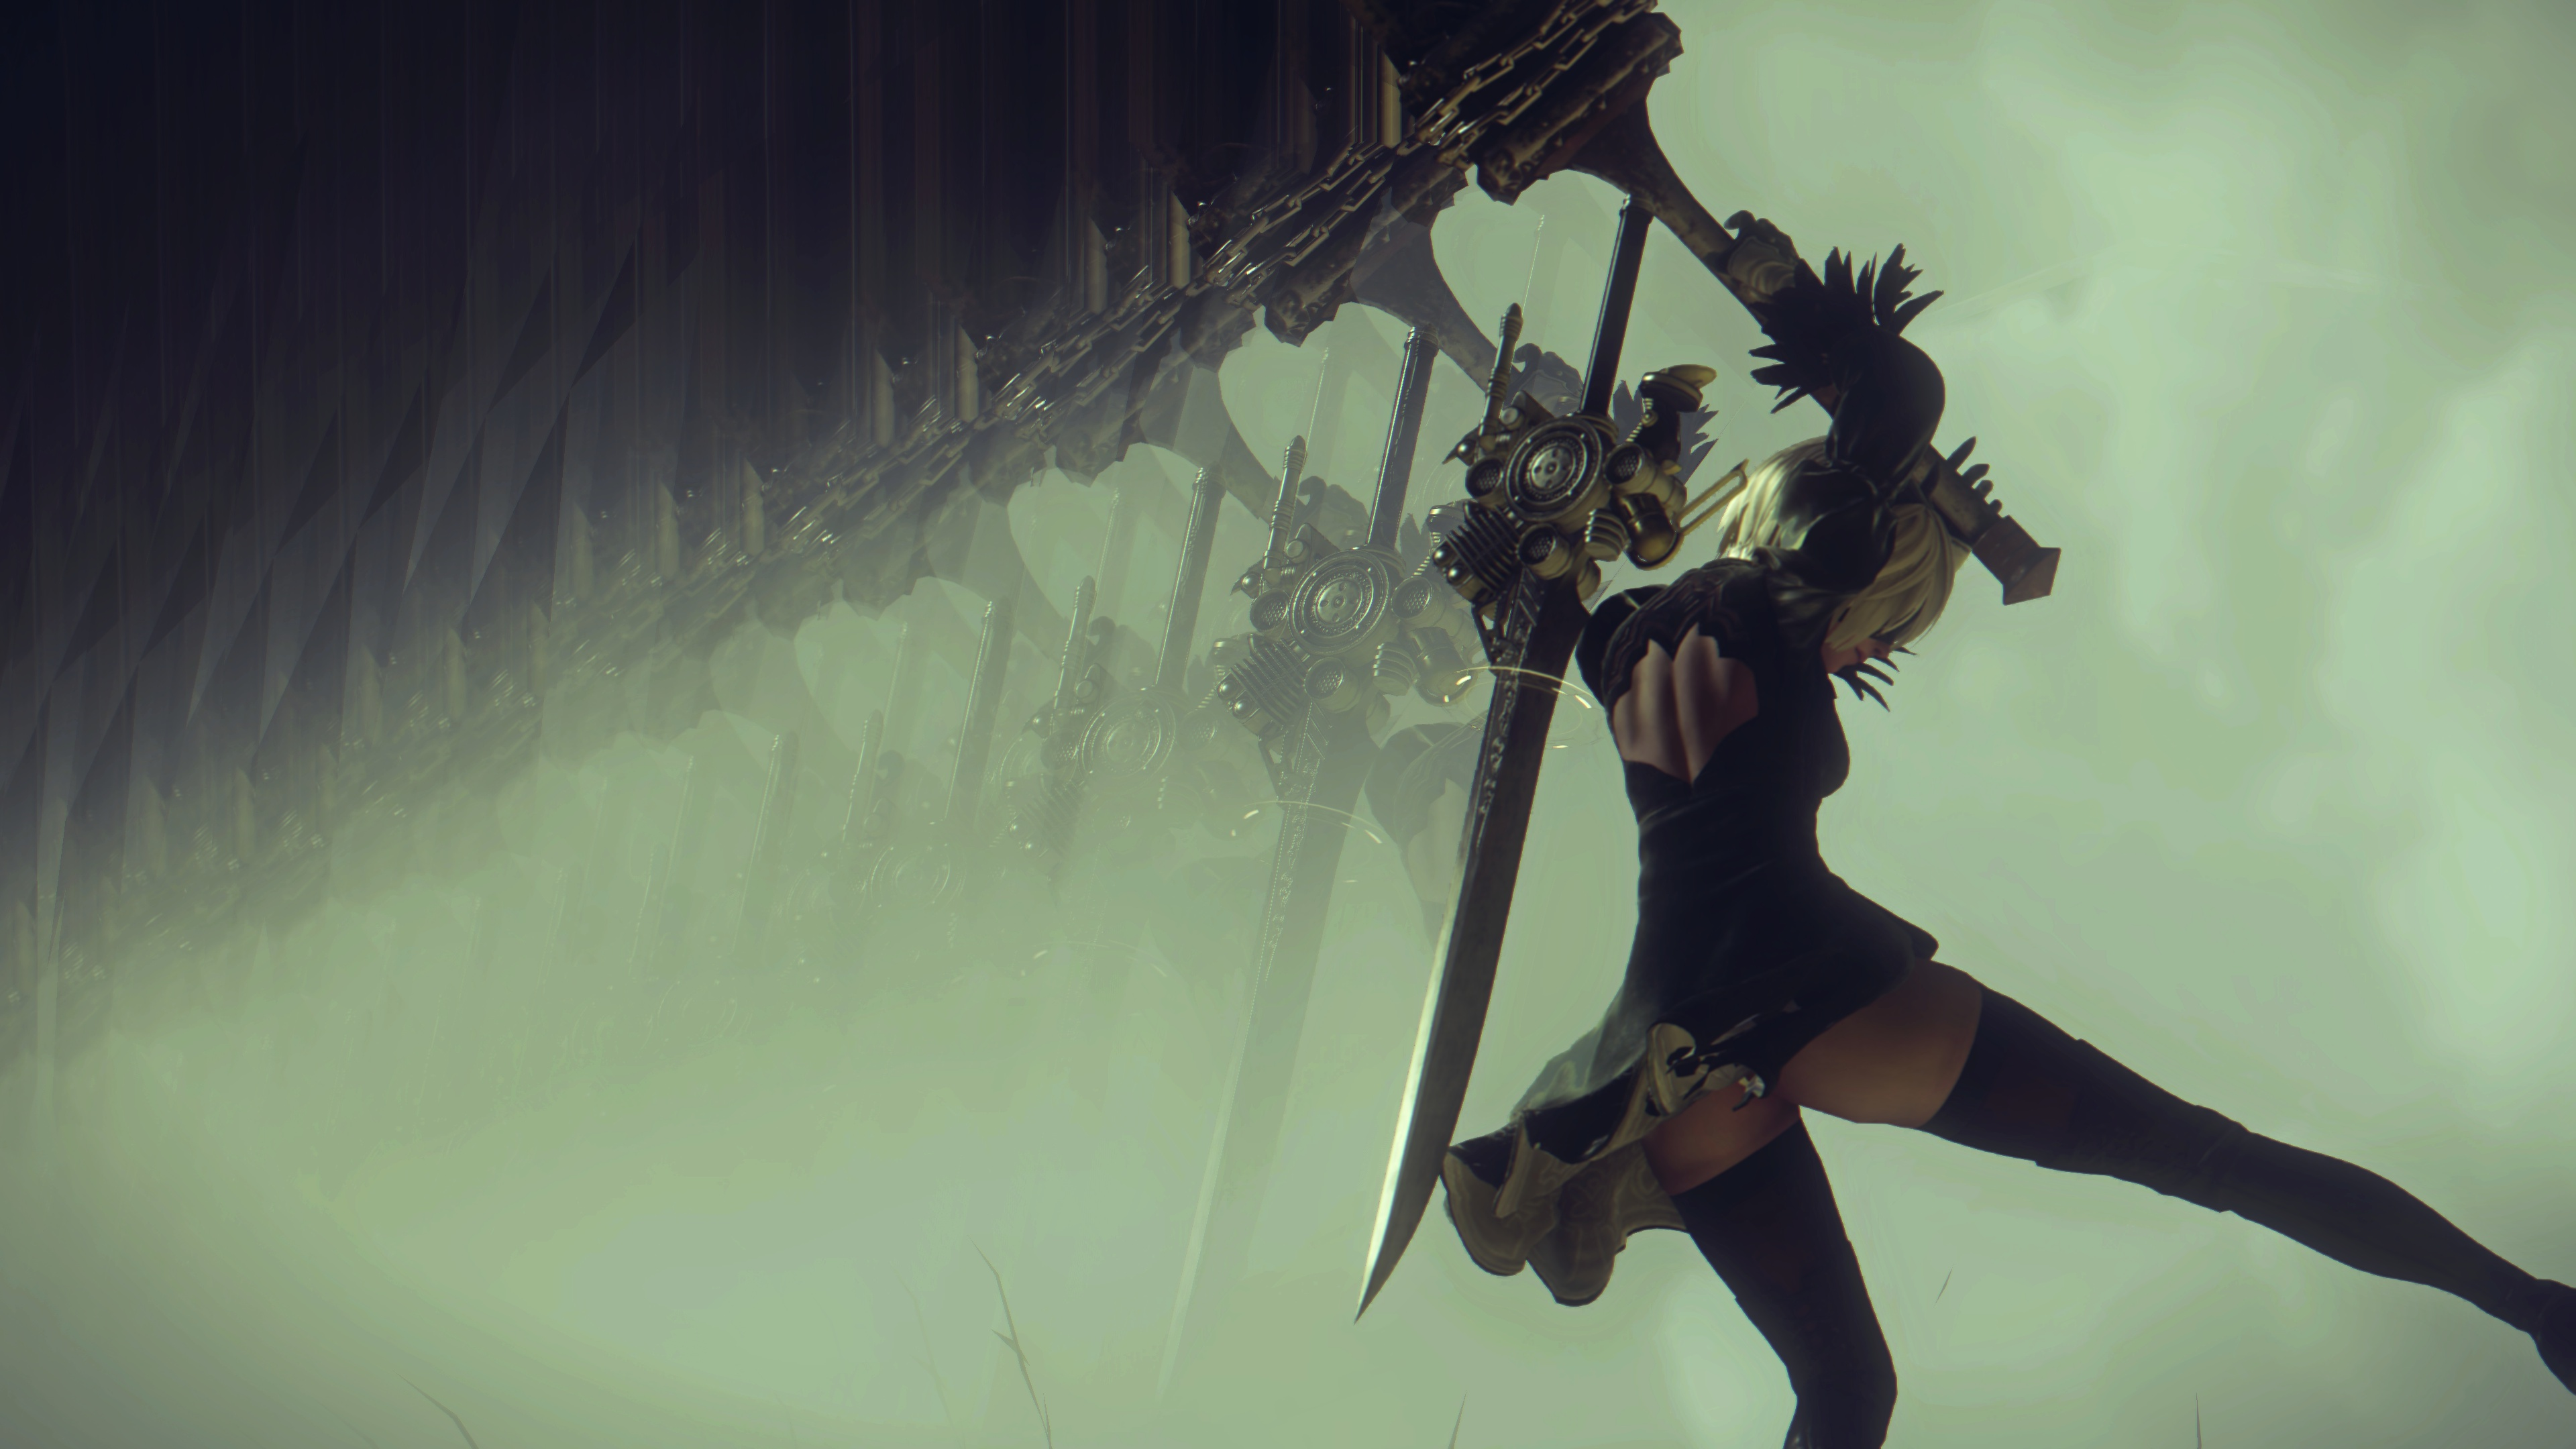 Hd wallpaper nier automata - Video Game Nier Automata Wallpaper